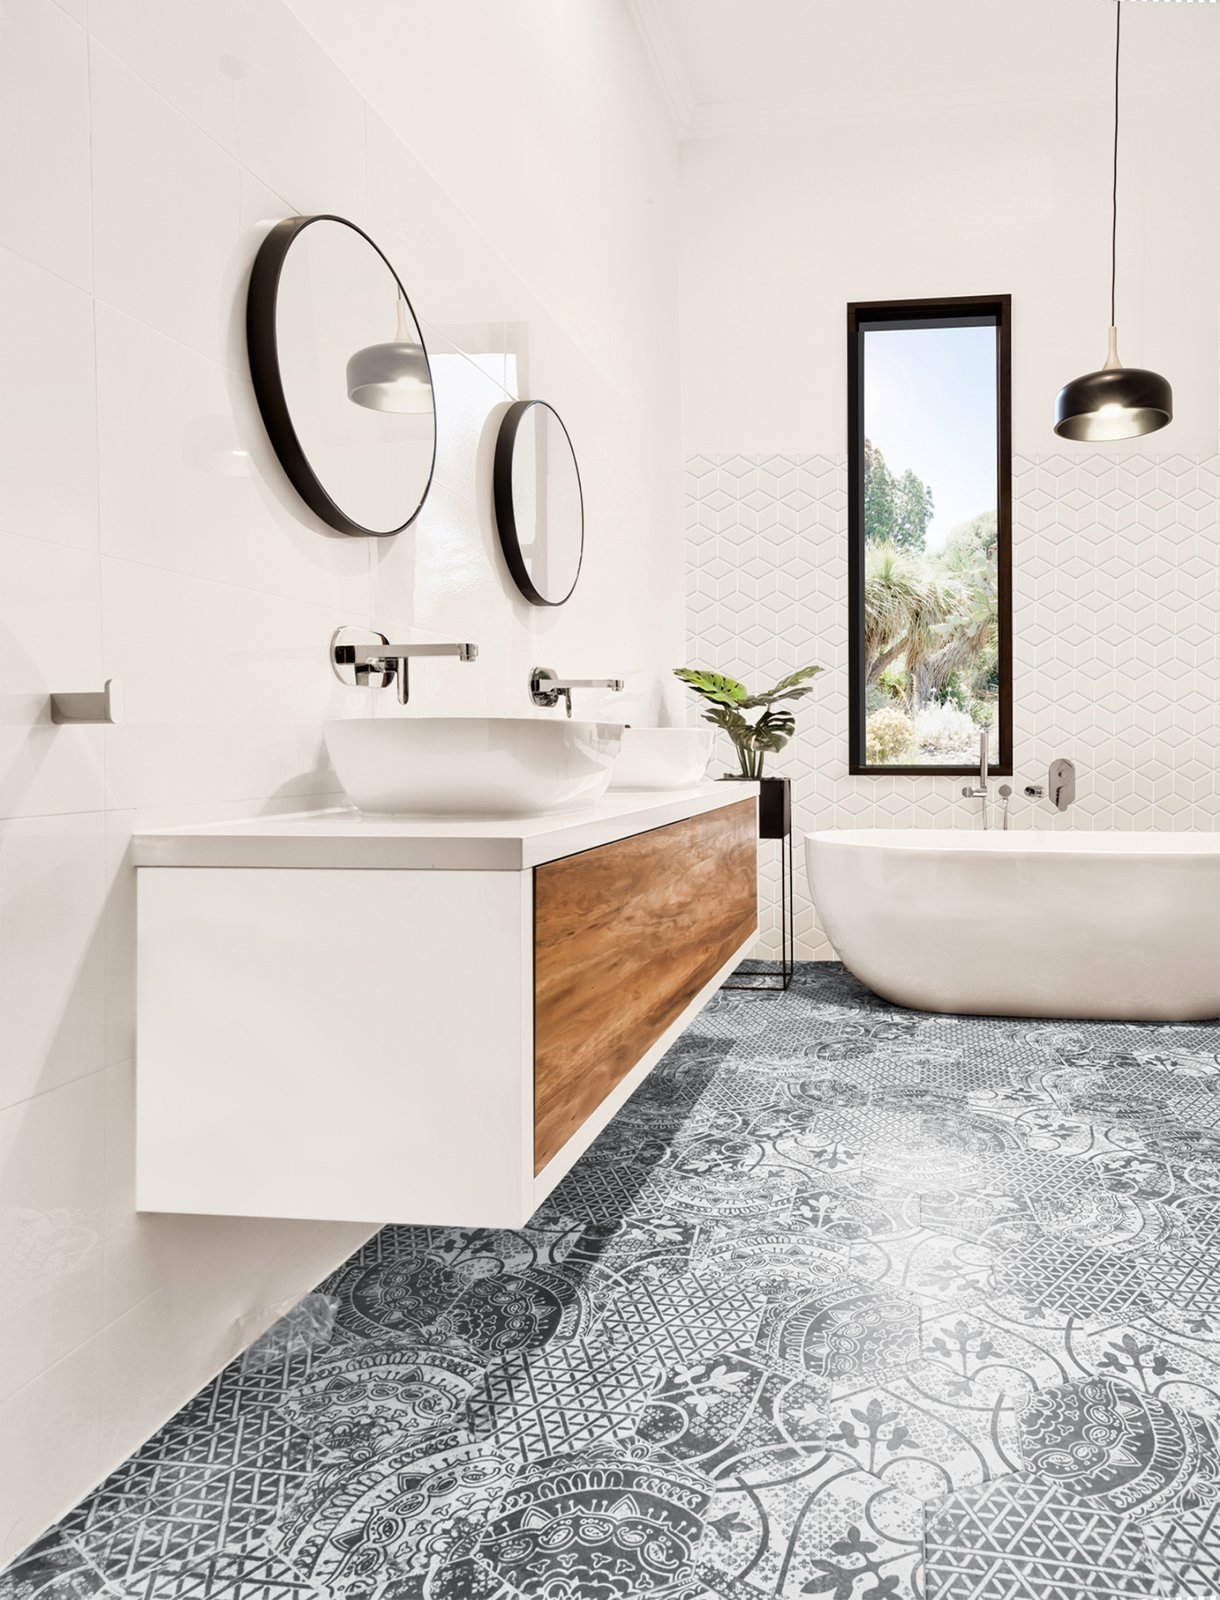 Bath, Pendant, Vessel, Engineered Quartz, Ceramic Tile, Porcelain Tile, and Freestanding  Best Bath Ceramic Tile Vessel Freestanding Photos from 6 Insider Tips For Bathroom Design From the Experts